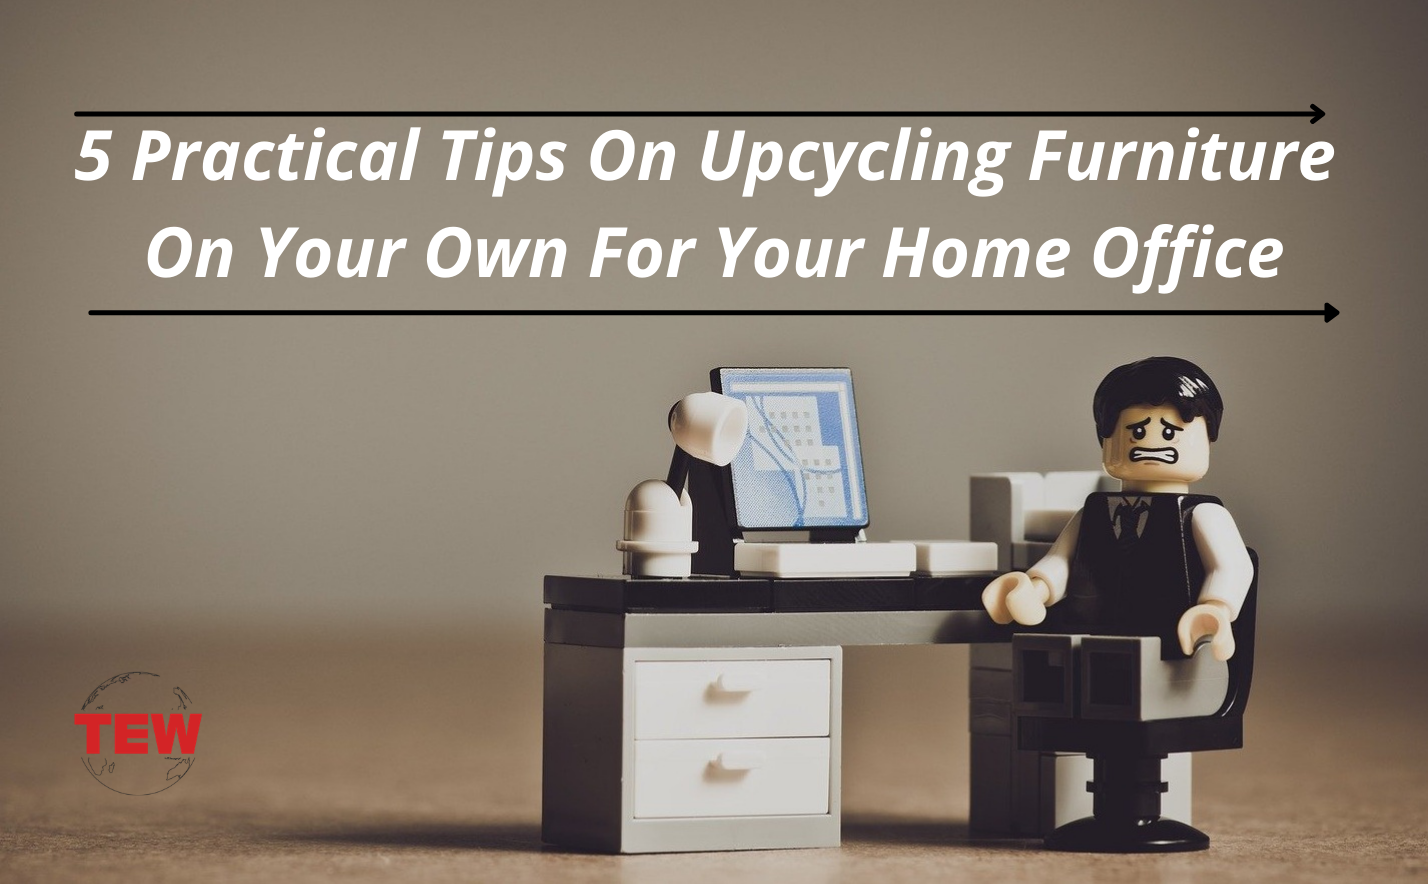 5 Practical Tips On Upcycling Furniture On Your Own For Your Home Office